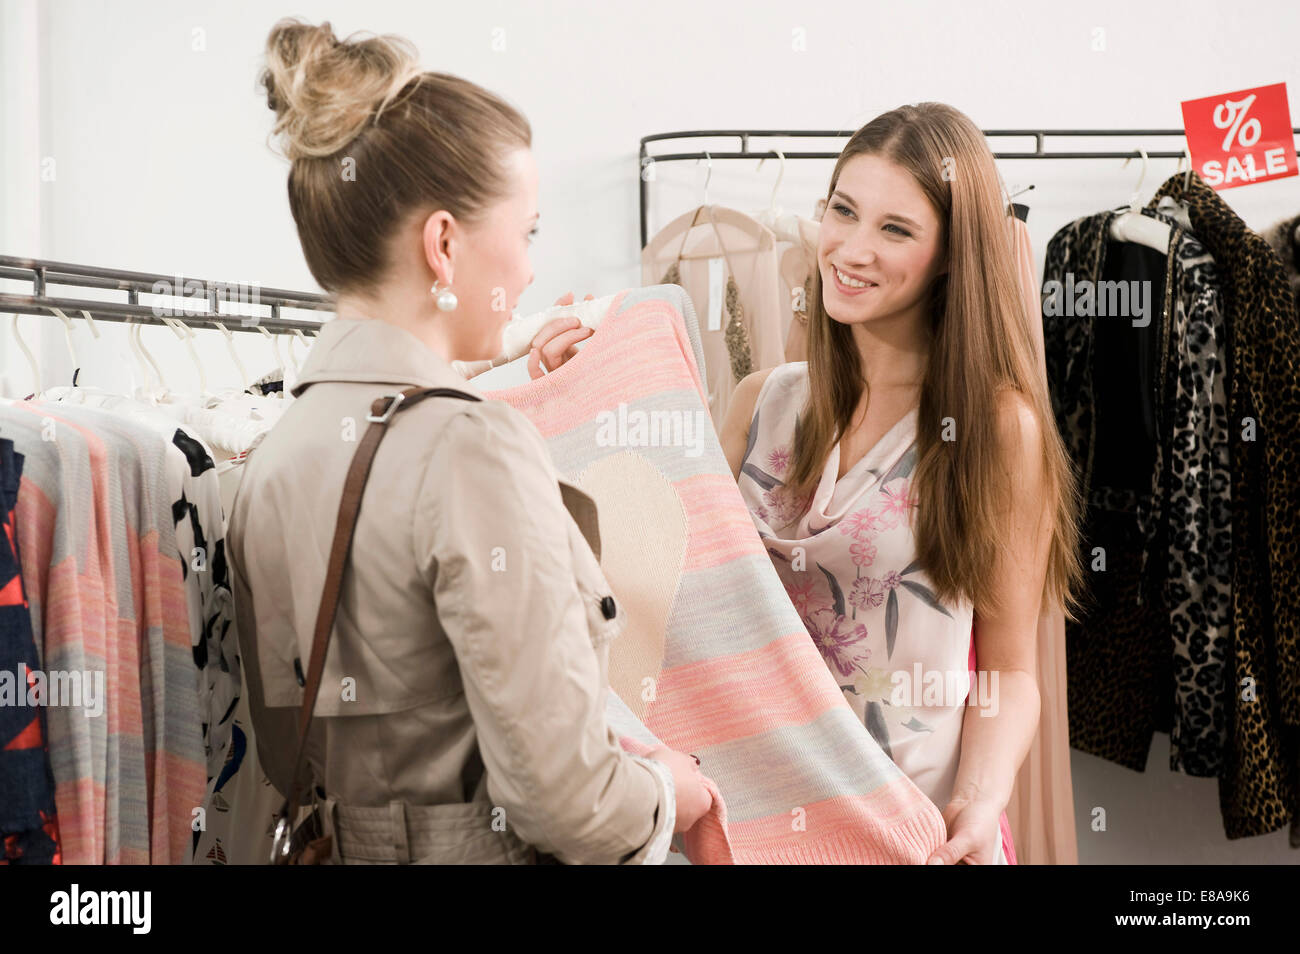 clothes shop assistant store stock photos clothes shop assistant s girl customer in fashion store stock image